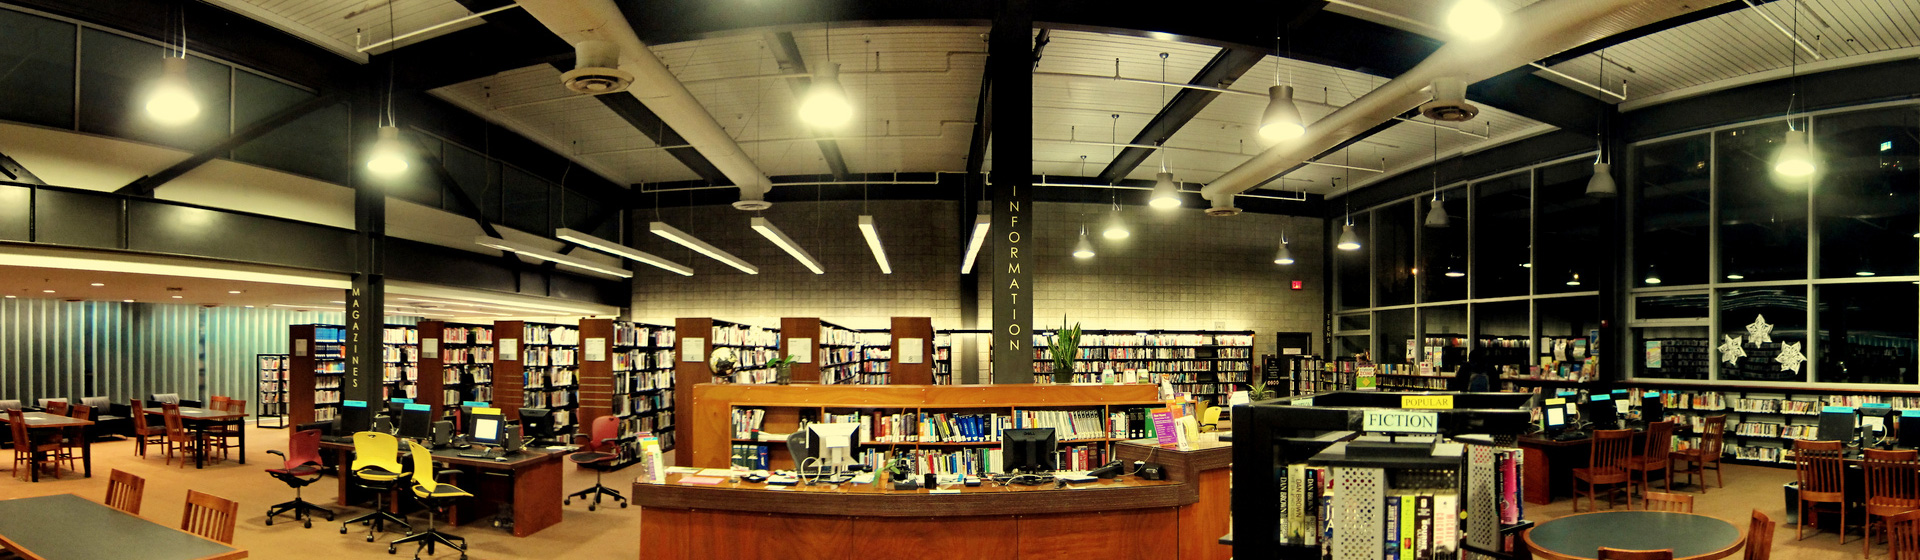 Westwood-Branch-Library